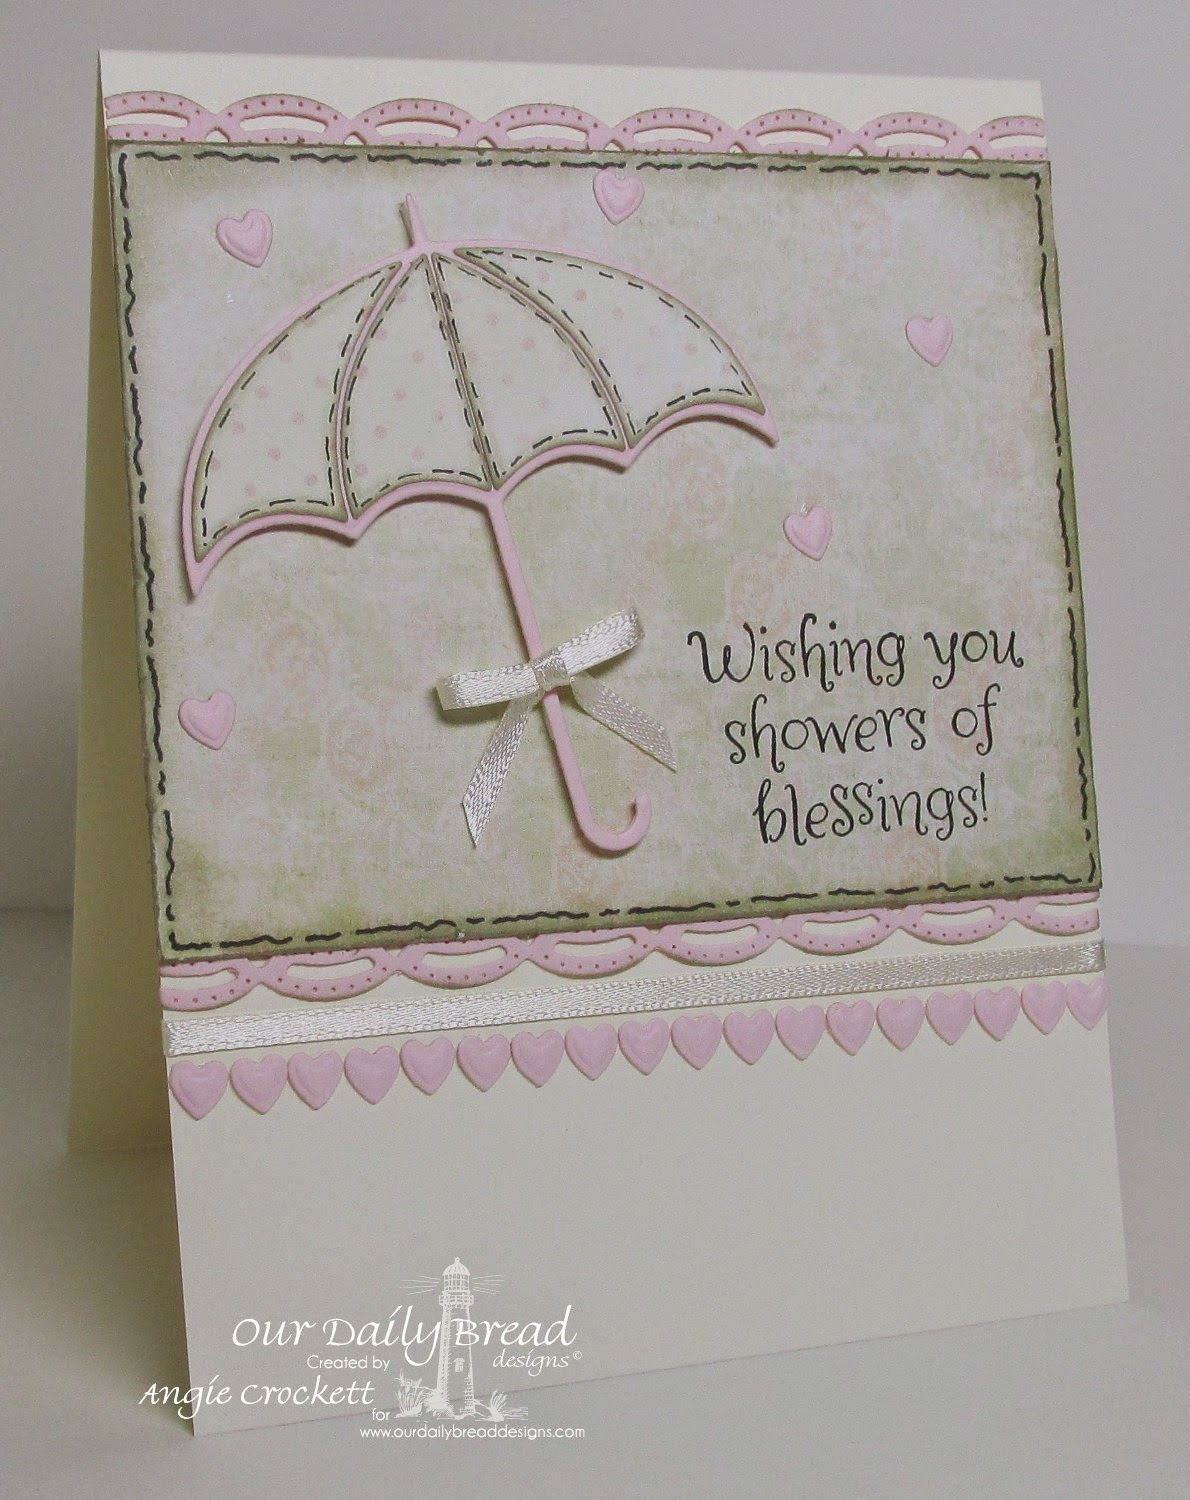 ODBD Custom Umbrellas Dies, ODBD Shower of Blessings, ODBD Custom Beautiful Borders Dies, Card Designer Angie Crockett